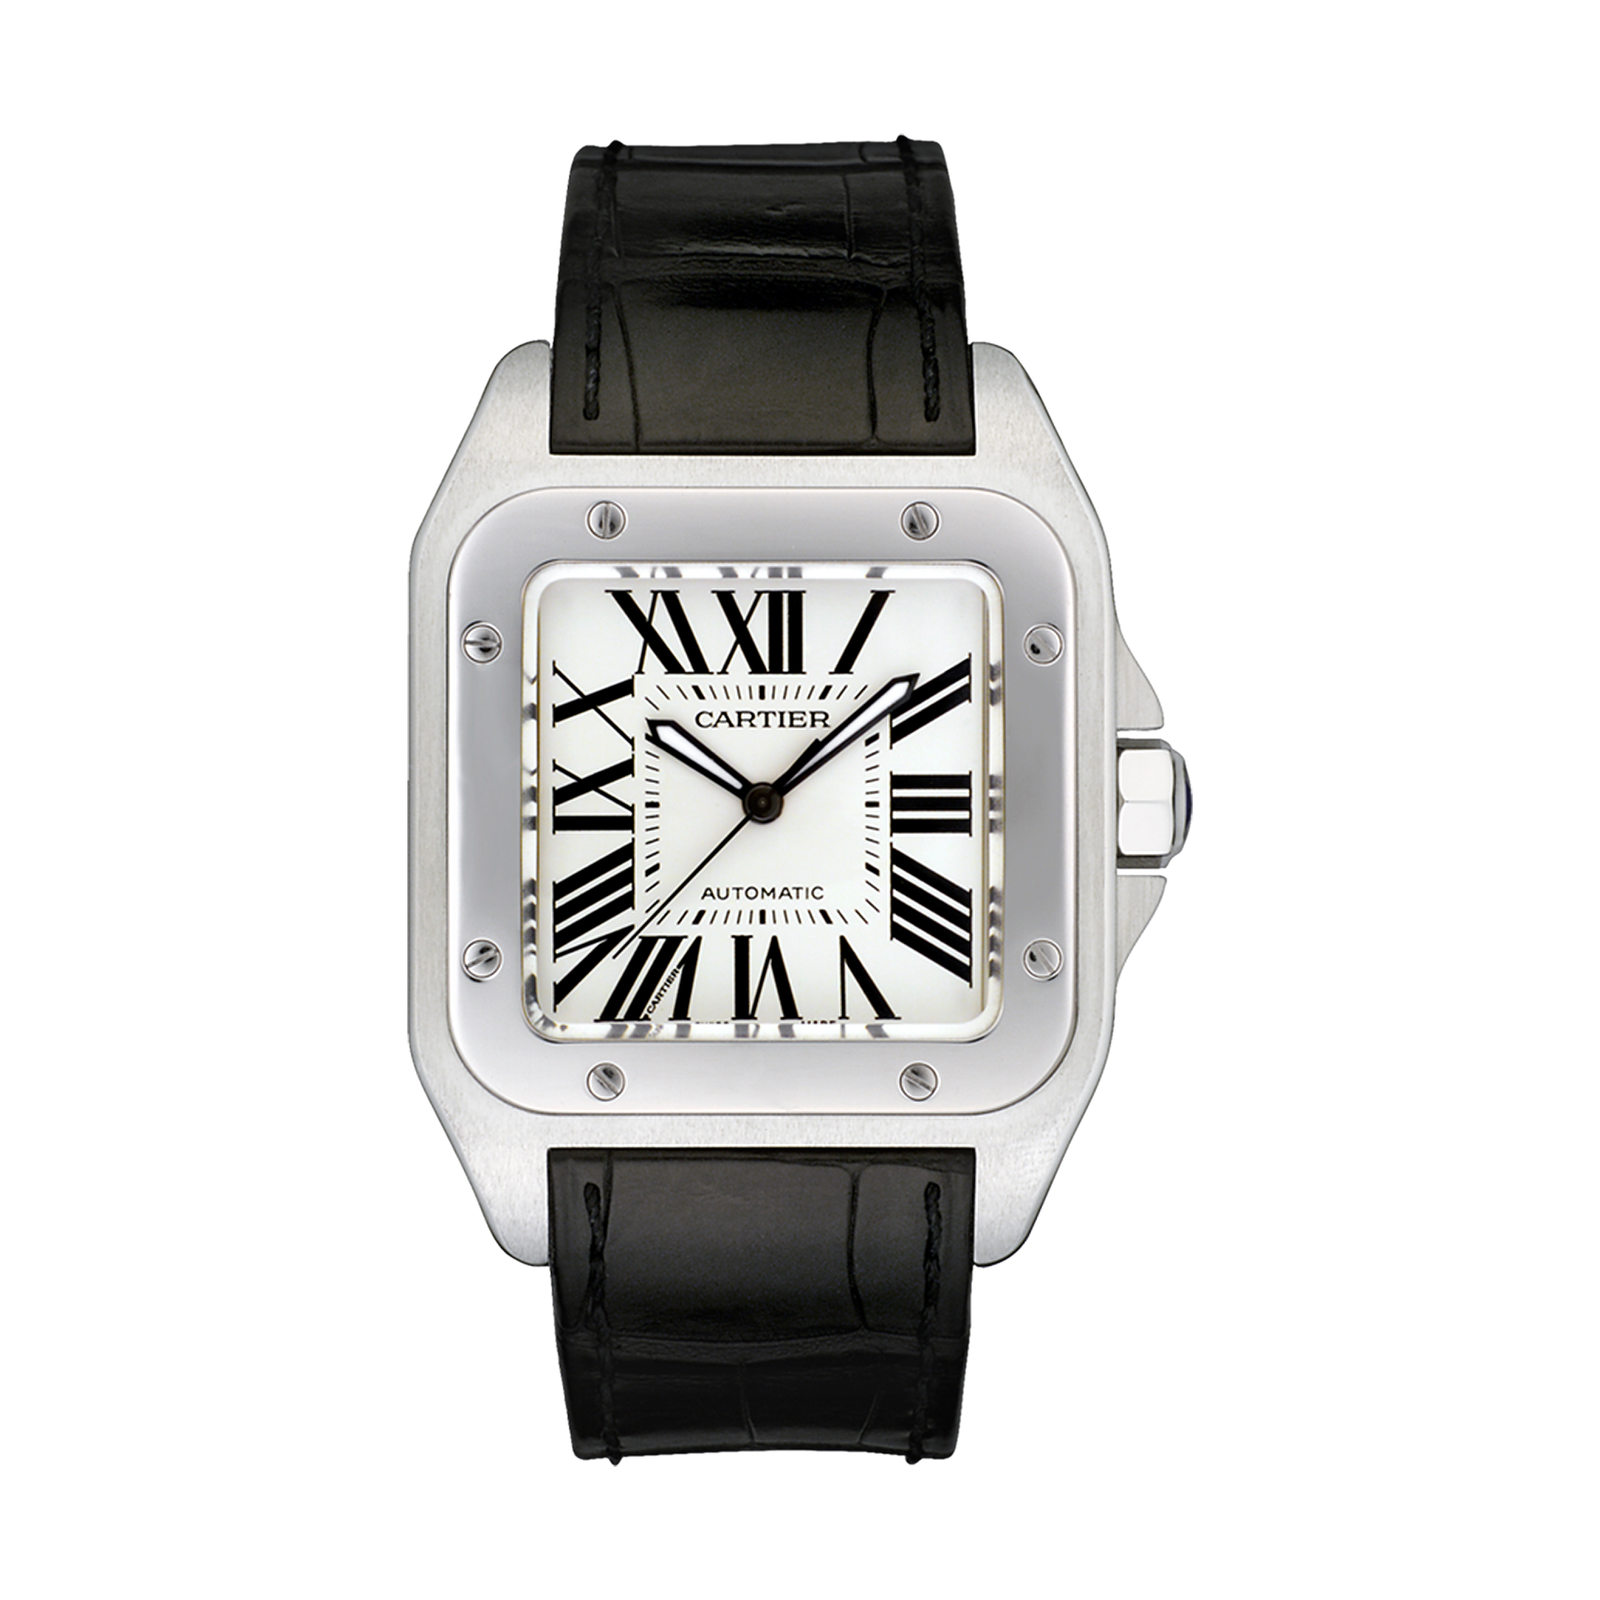 Men's Watches - cartier.com